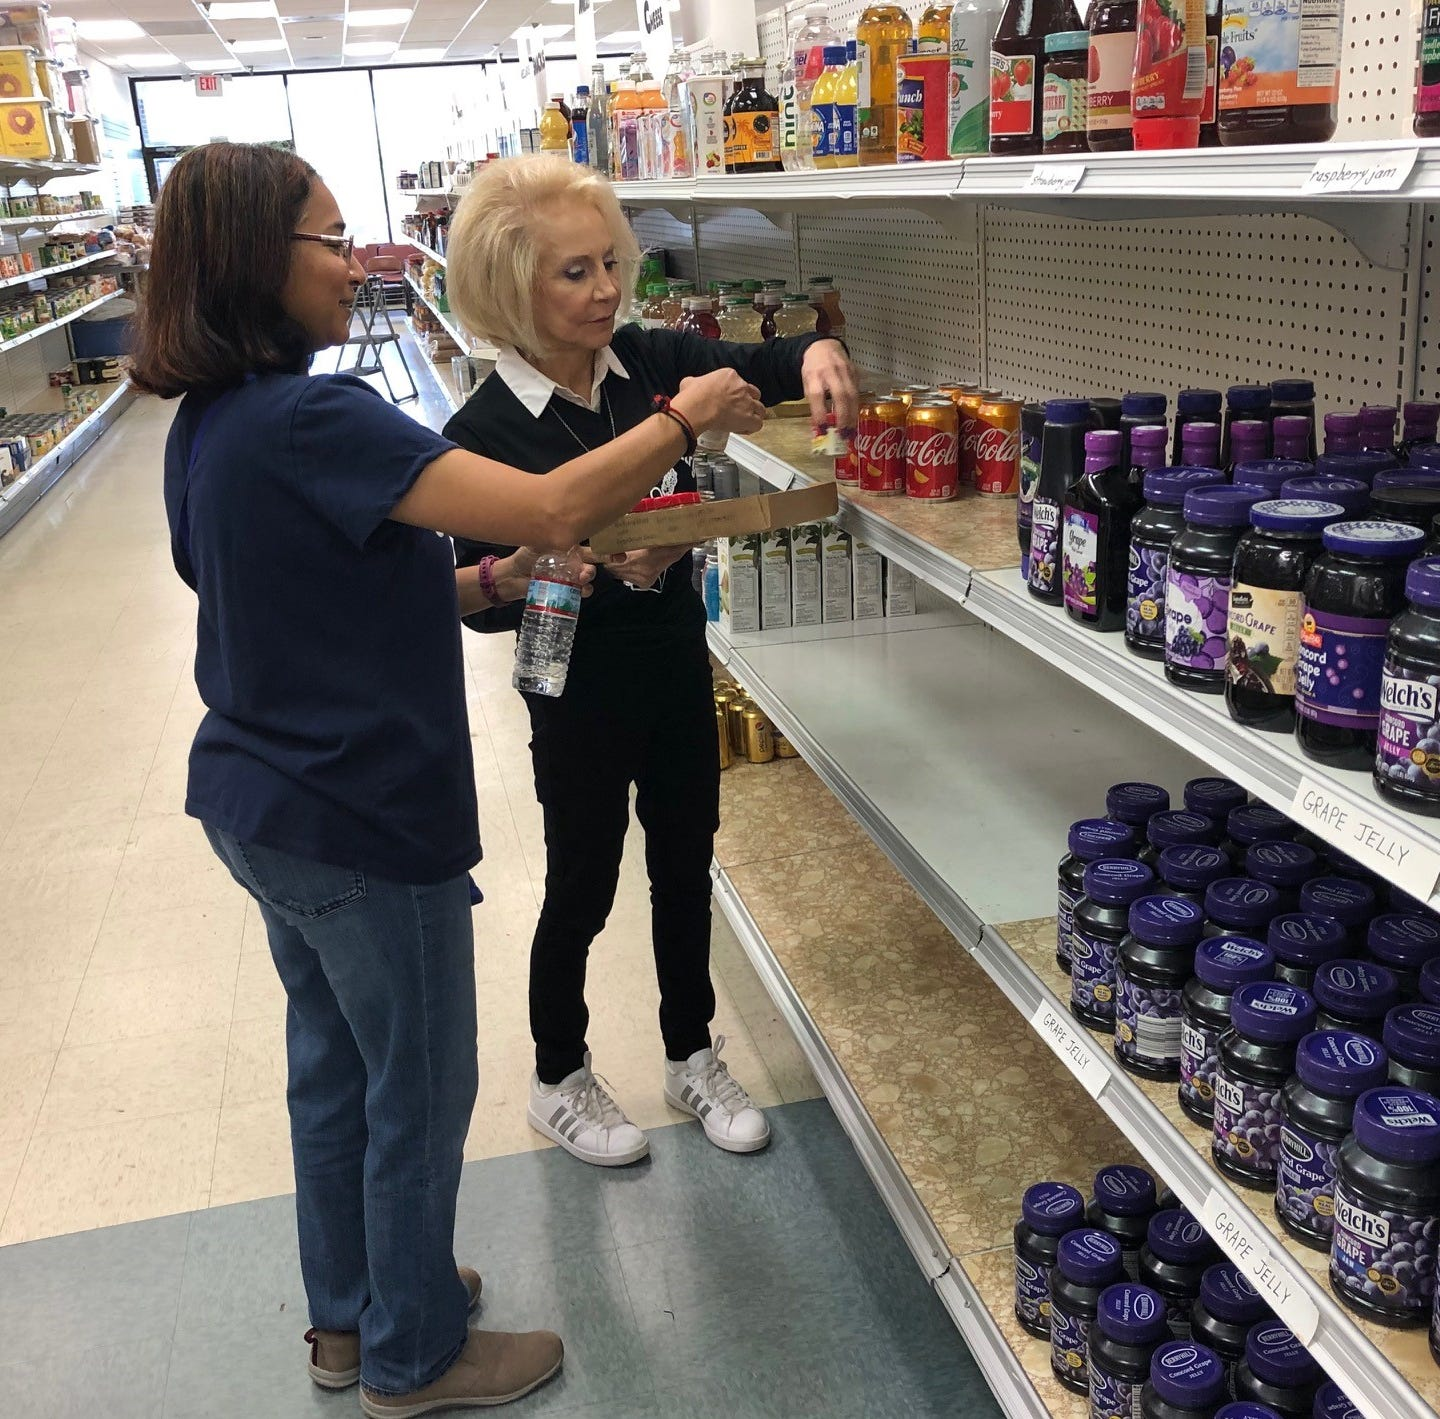 Food pantry, other tenants affected as shopping center prepares for new market